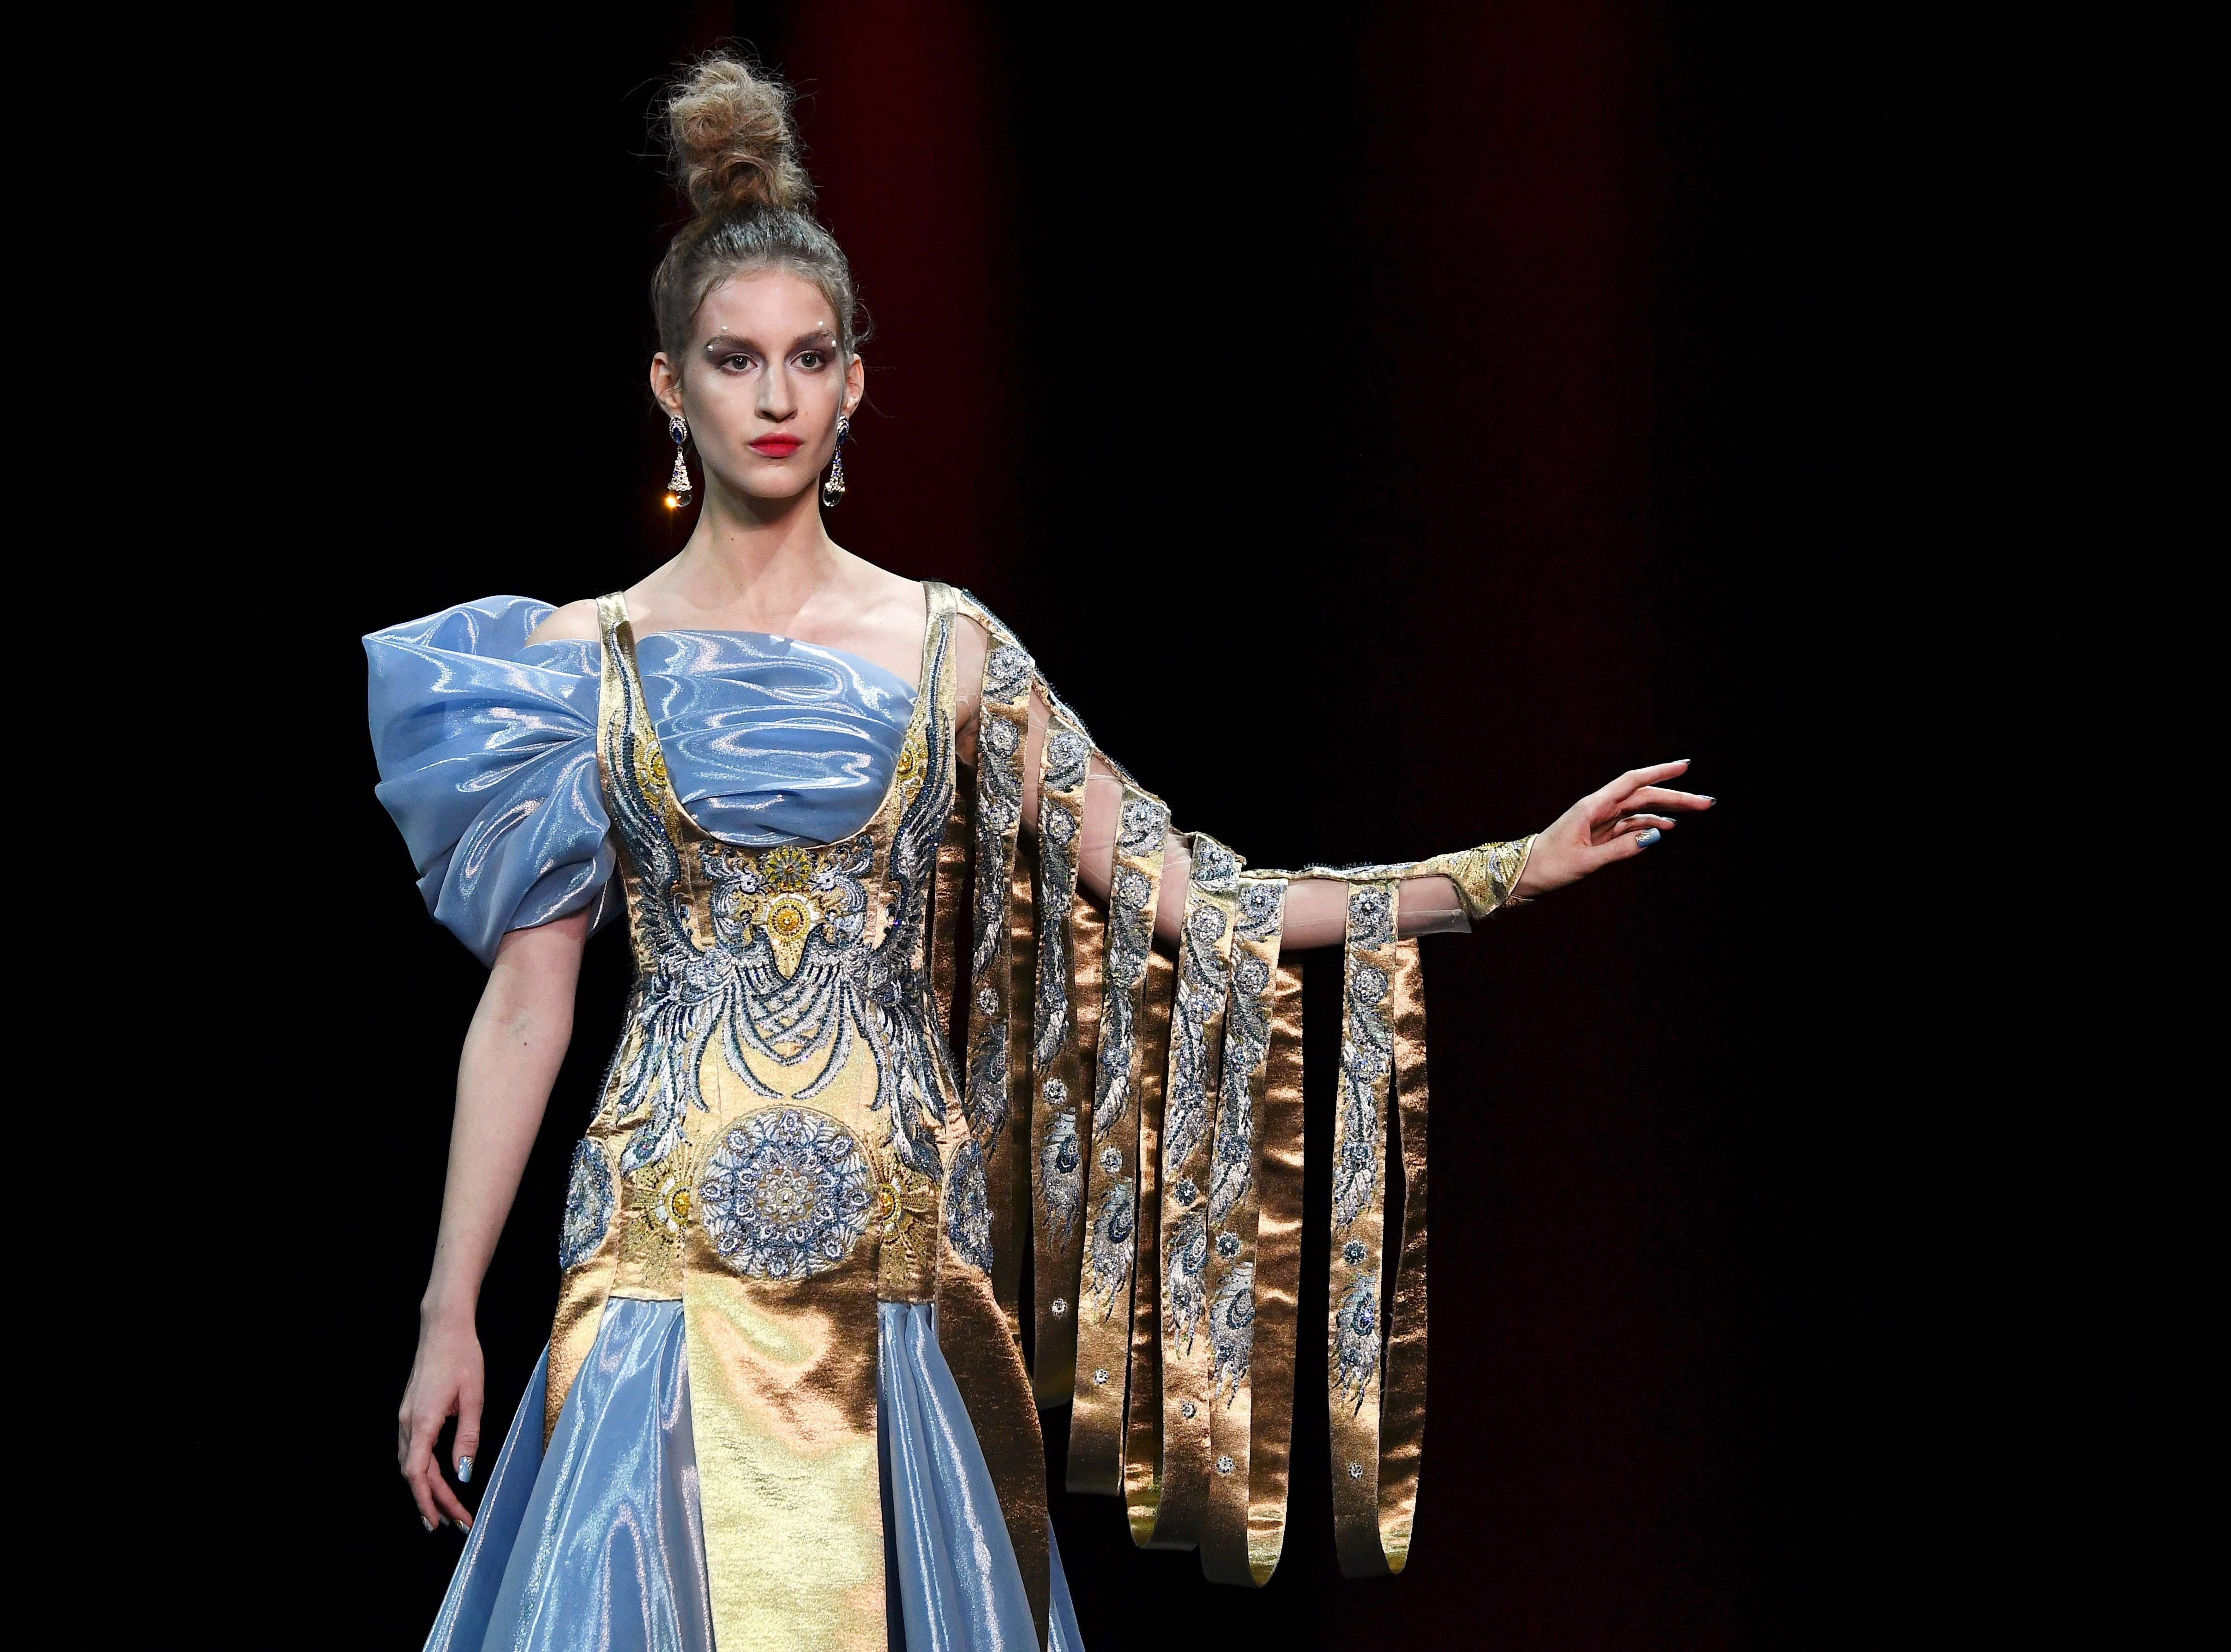 A model presents a creation by Guo Pei during the 2019 Spring-Summer Haute Couture collection fashion show in Paris, on January 23, 2019. (Photo by Anne-Christine POUJOULAT / AFP)ANNE-CHRISTINE POUJOULAT/AFP/Getty Images ORIG FILE ID: AFP_1CK48X